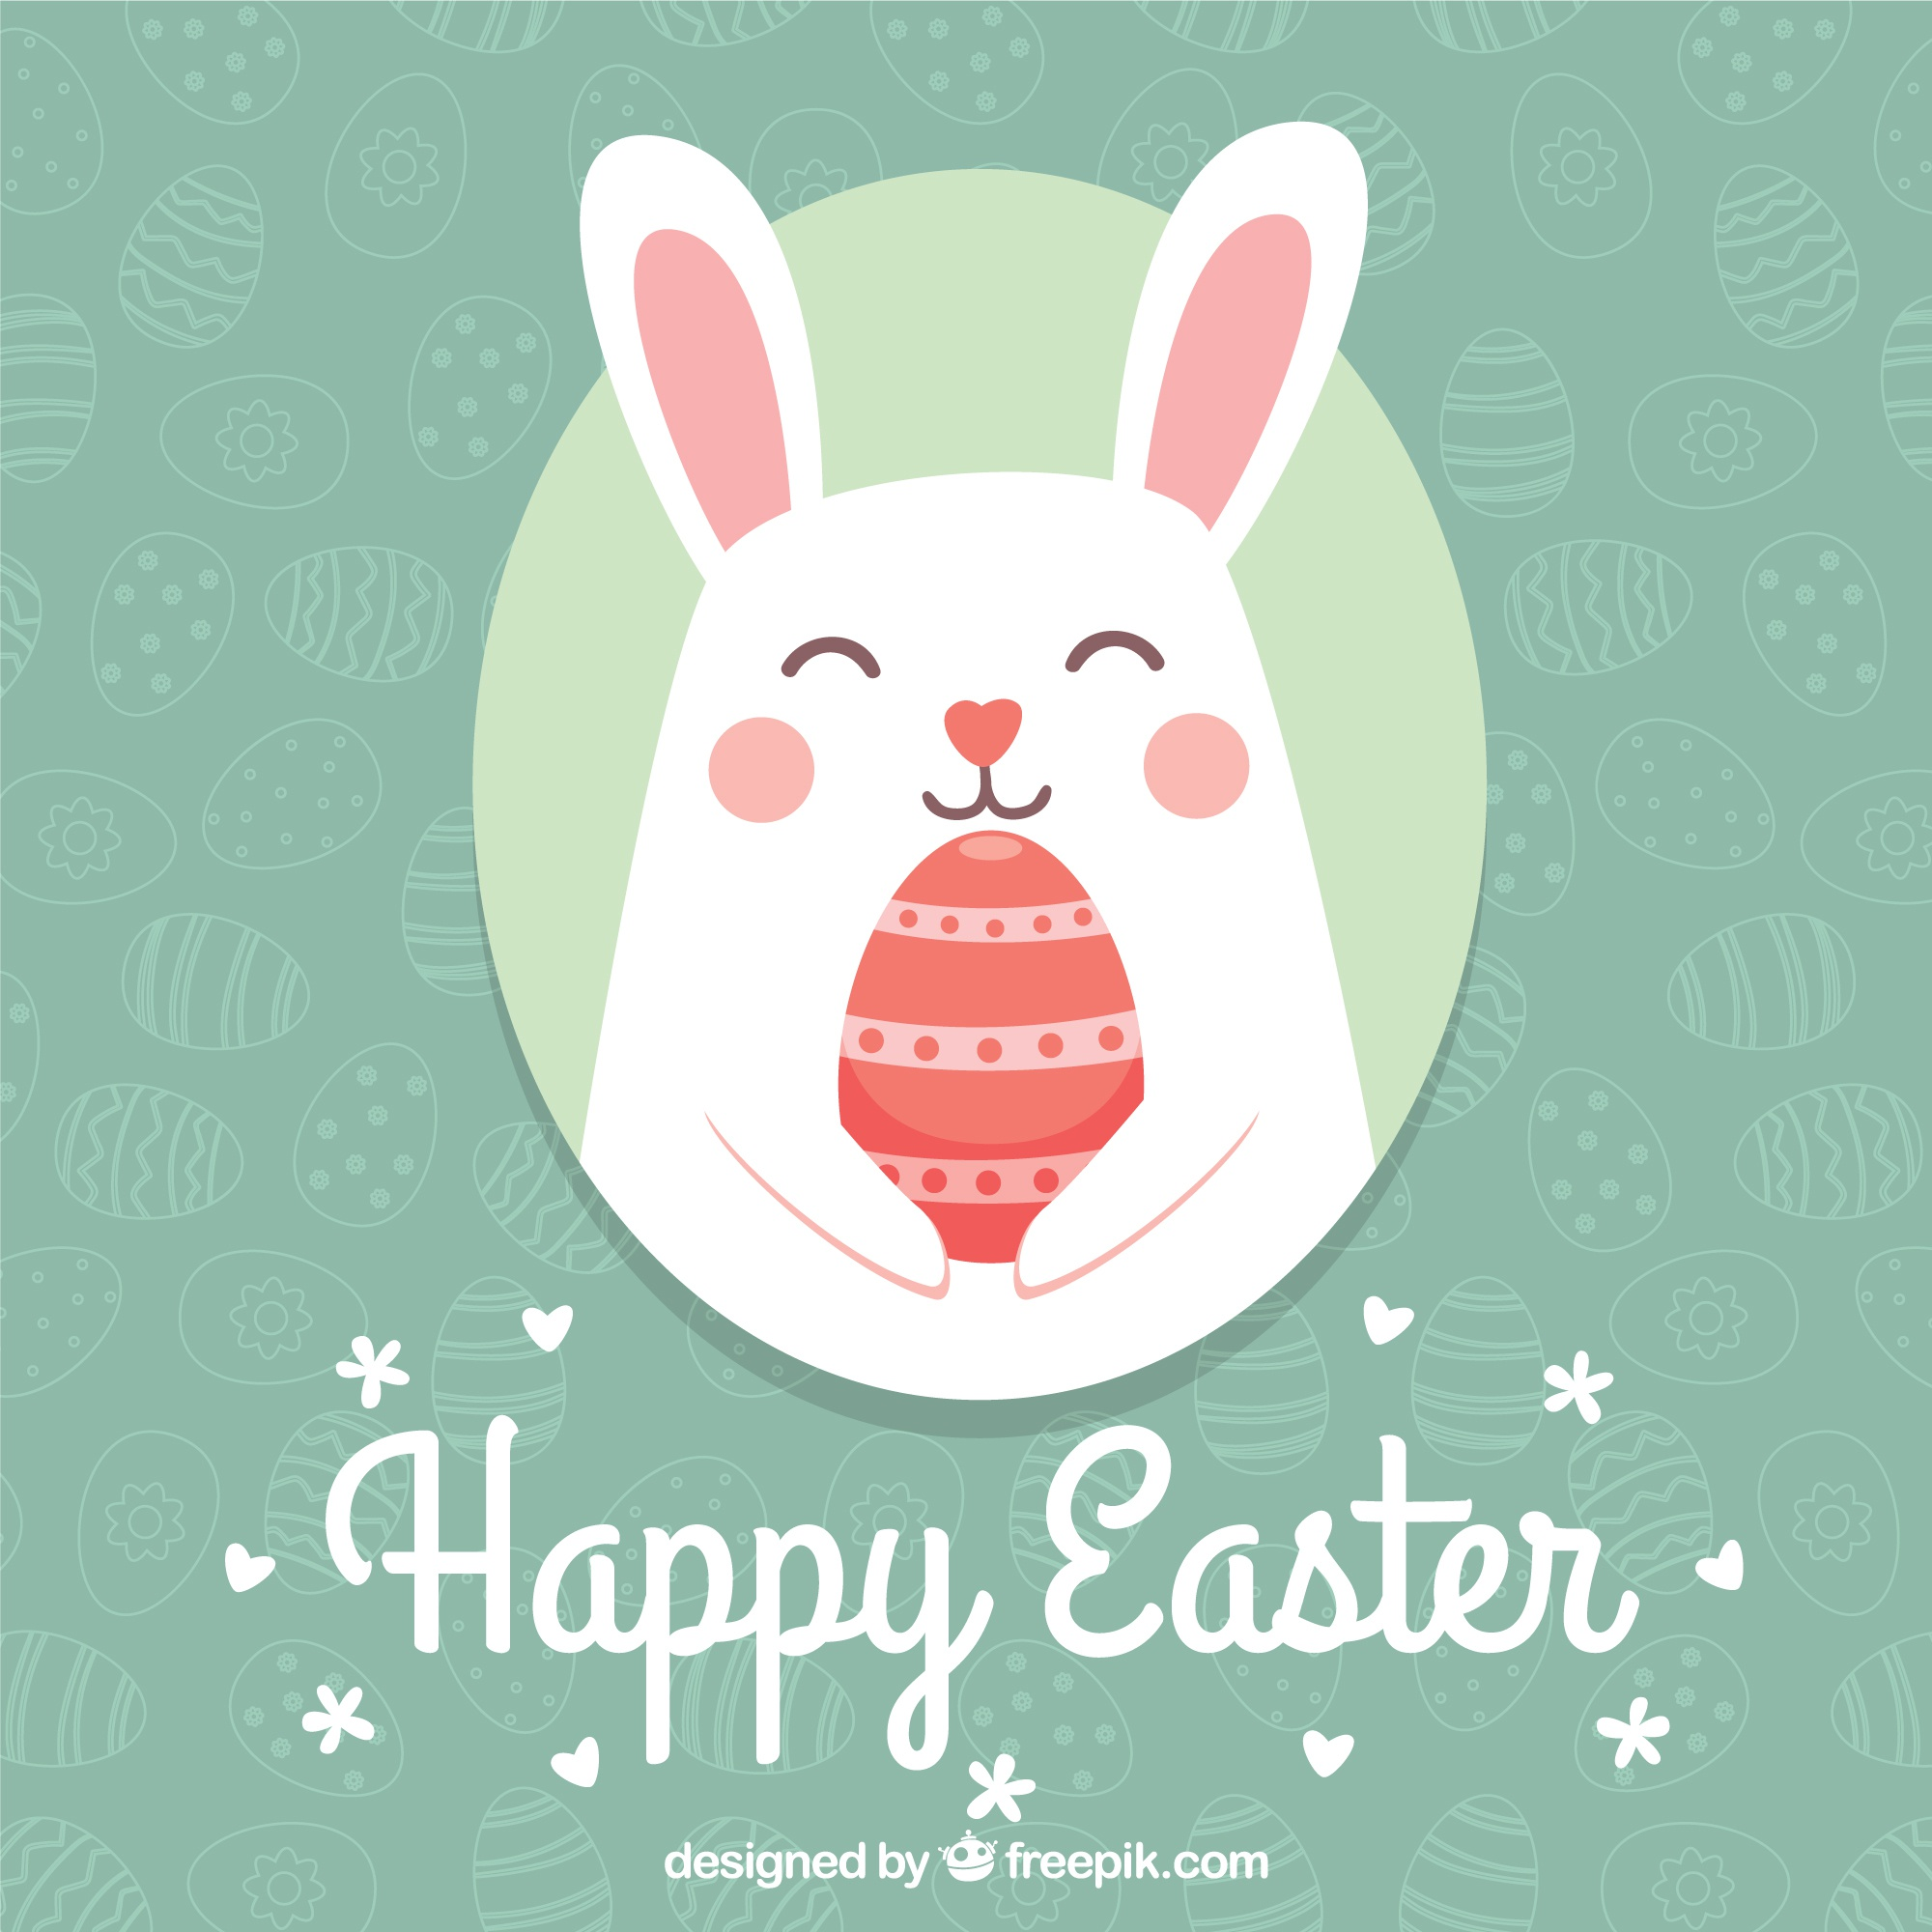 Nice bunny Easter background